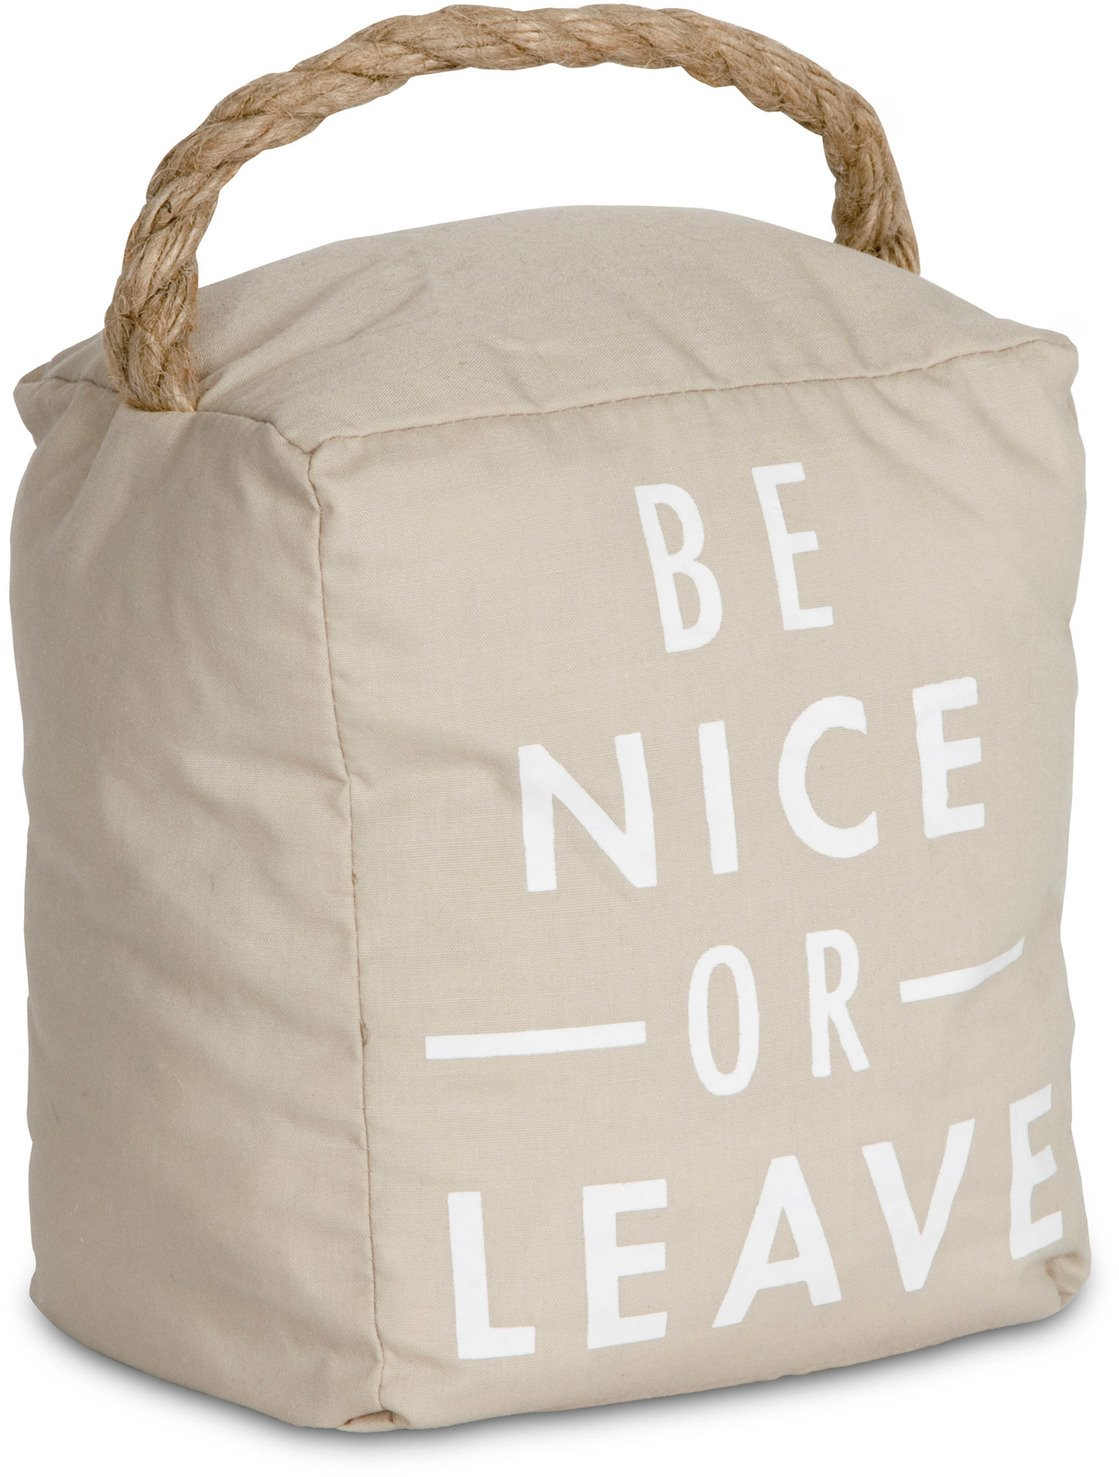 Pavilion Gift Company 72192 Be Nice or Leave Door Stopper, 5 x 6''